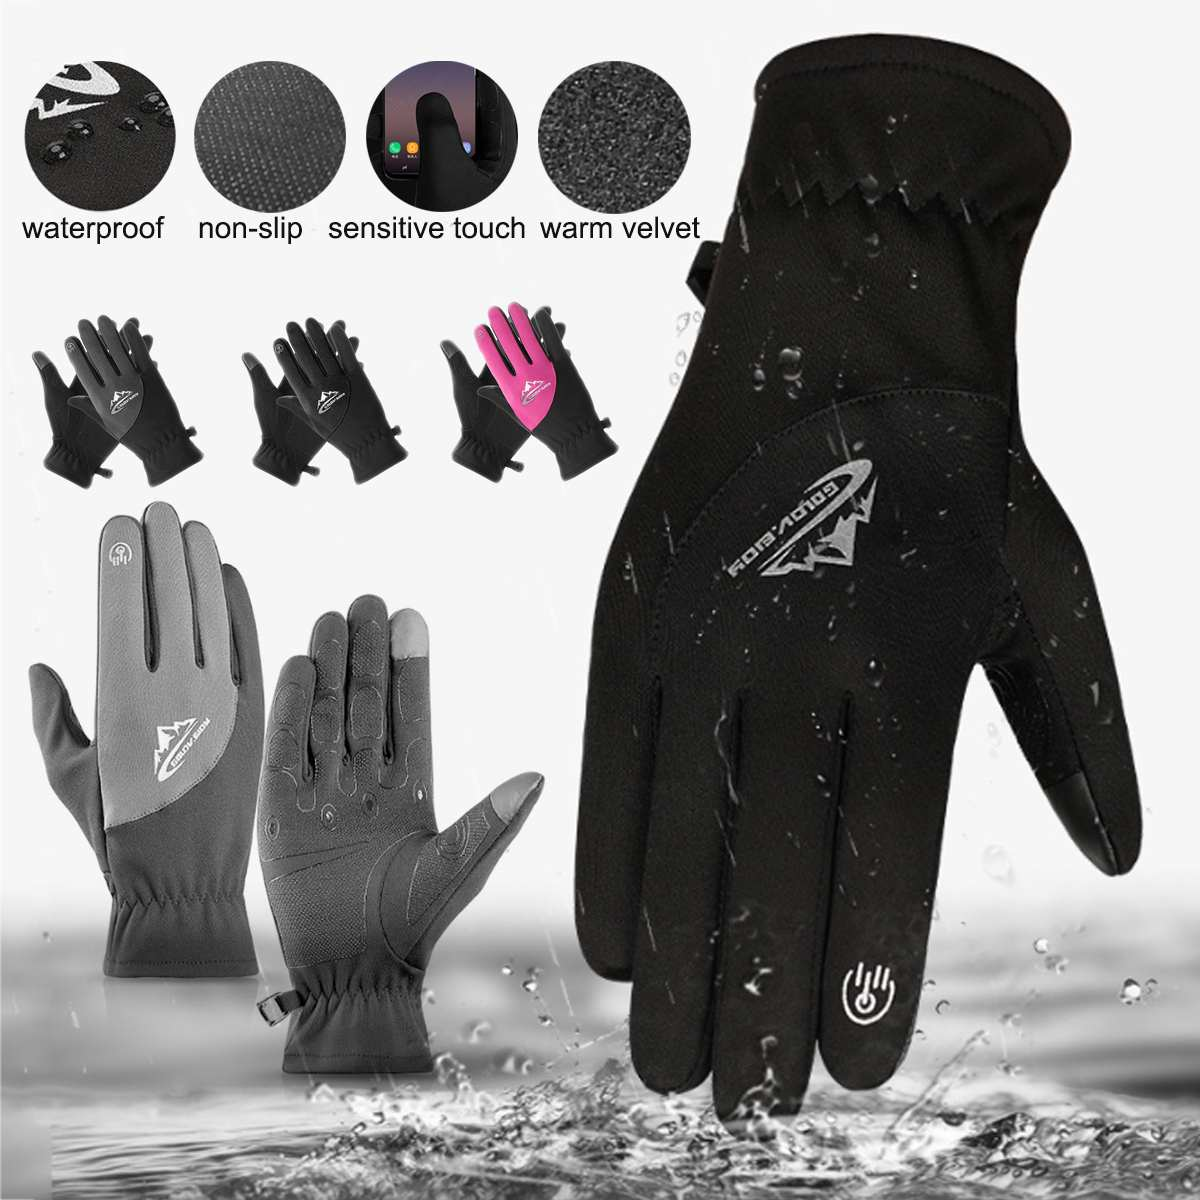 US $4.6 |Thermal Ski Gloves Winter Fleece Waterproof Snowboard Gloves Snow Motorcycle Skiing Gloves Sportswear for Men Women Gloves-in Skiing Gloves from Sports & Entertainment on Aliexpress.com | Alibaba Group